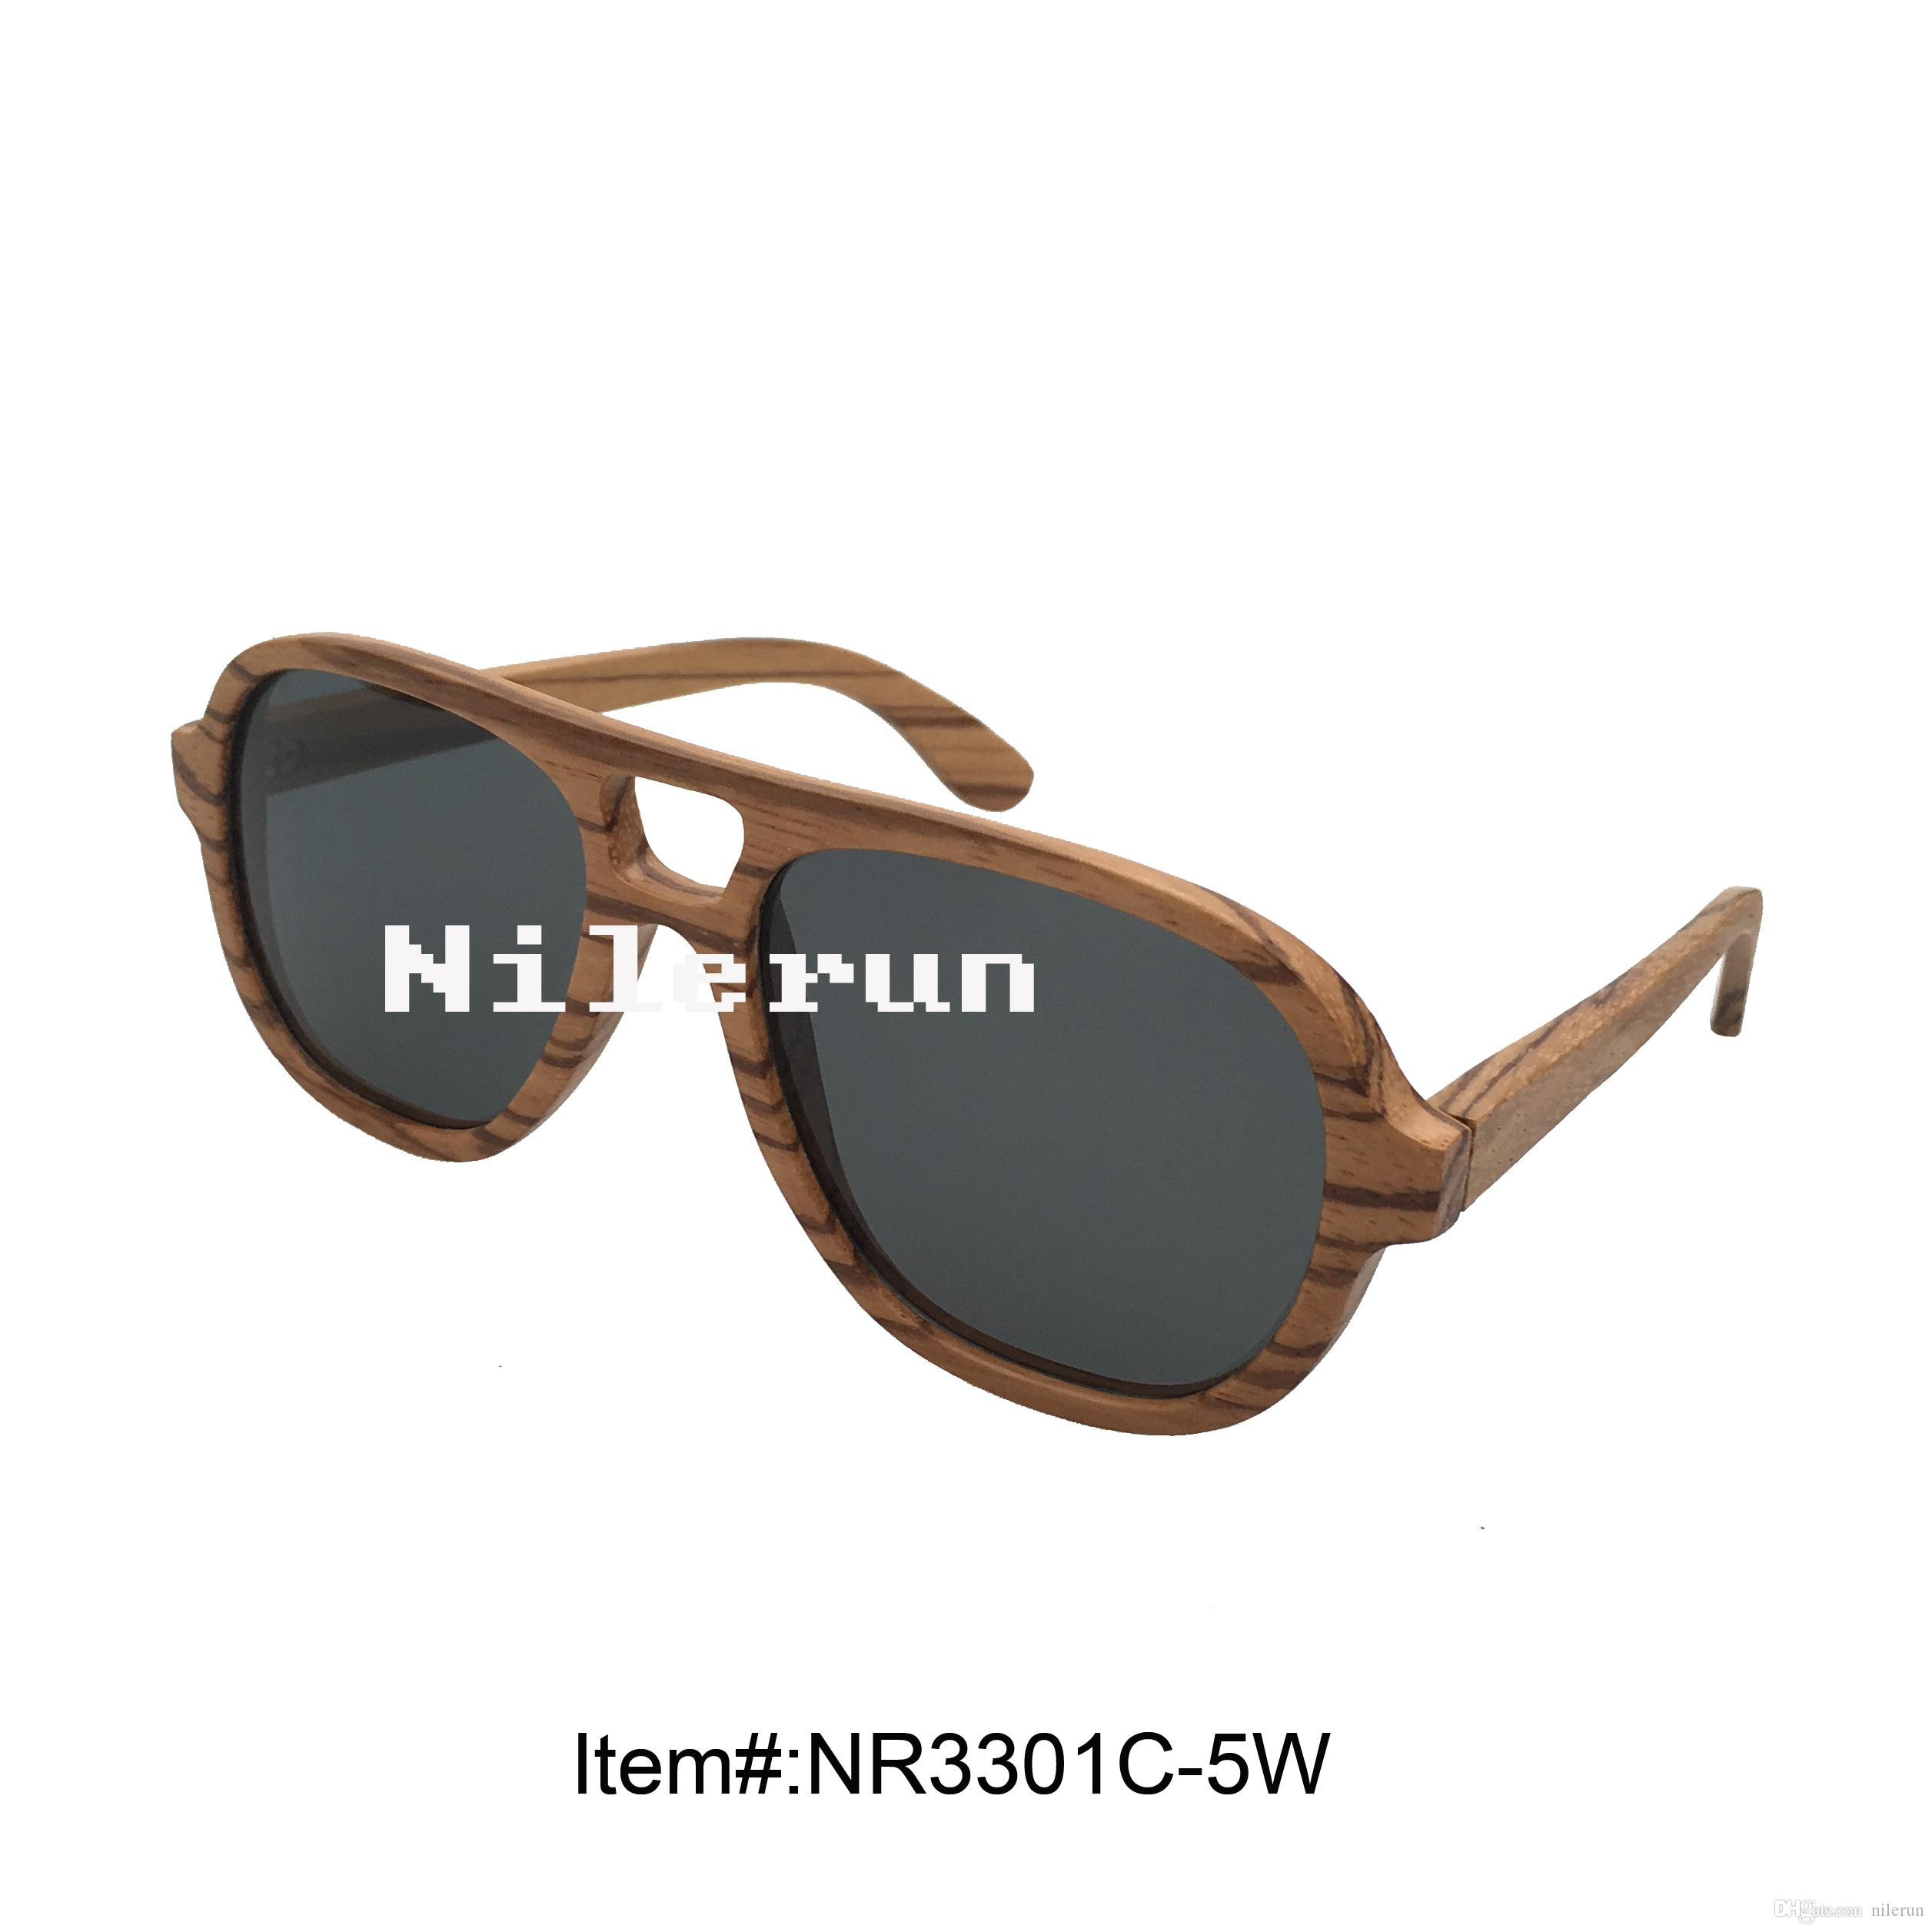 stylish pilot style zebra wood sunglasses